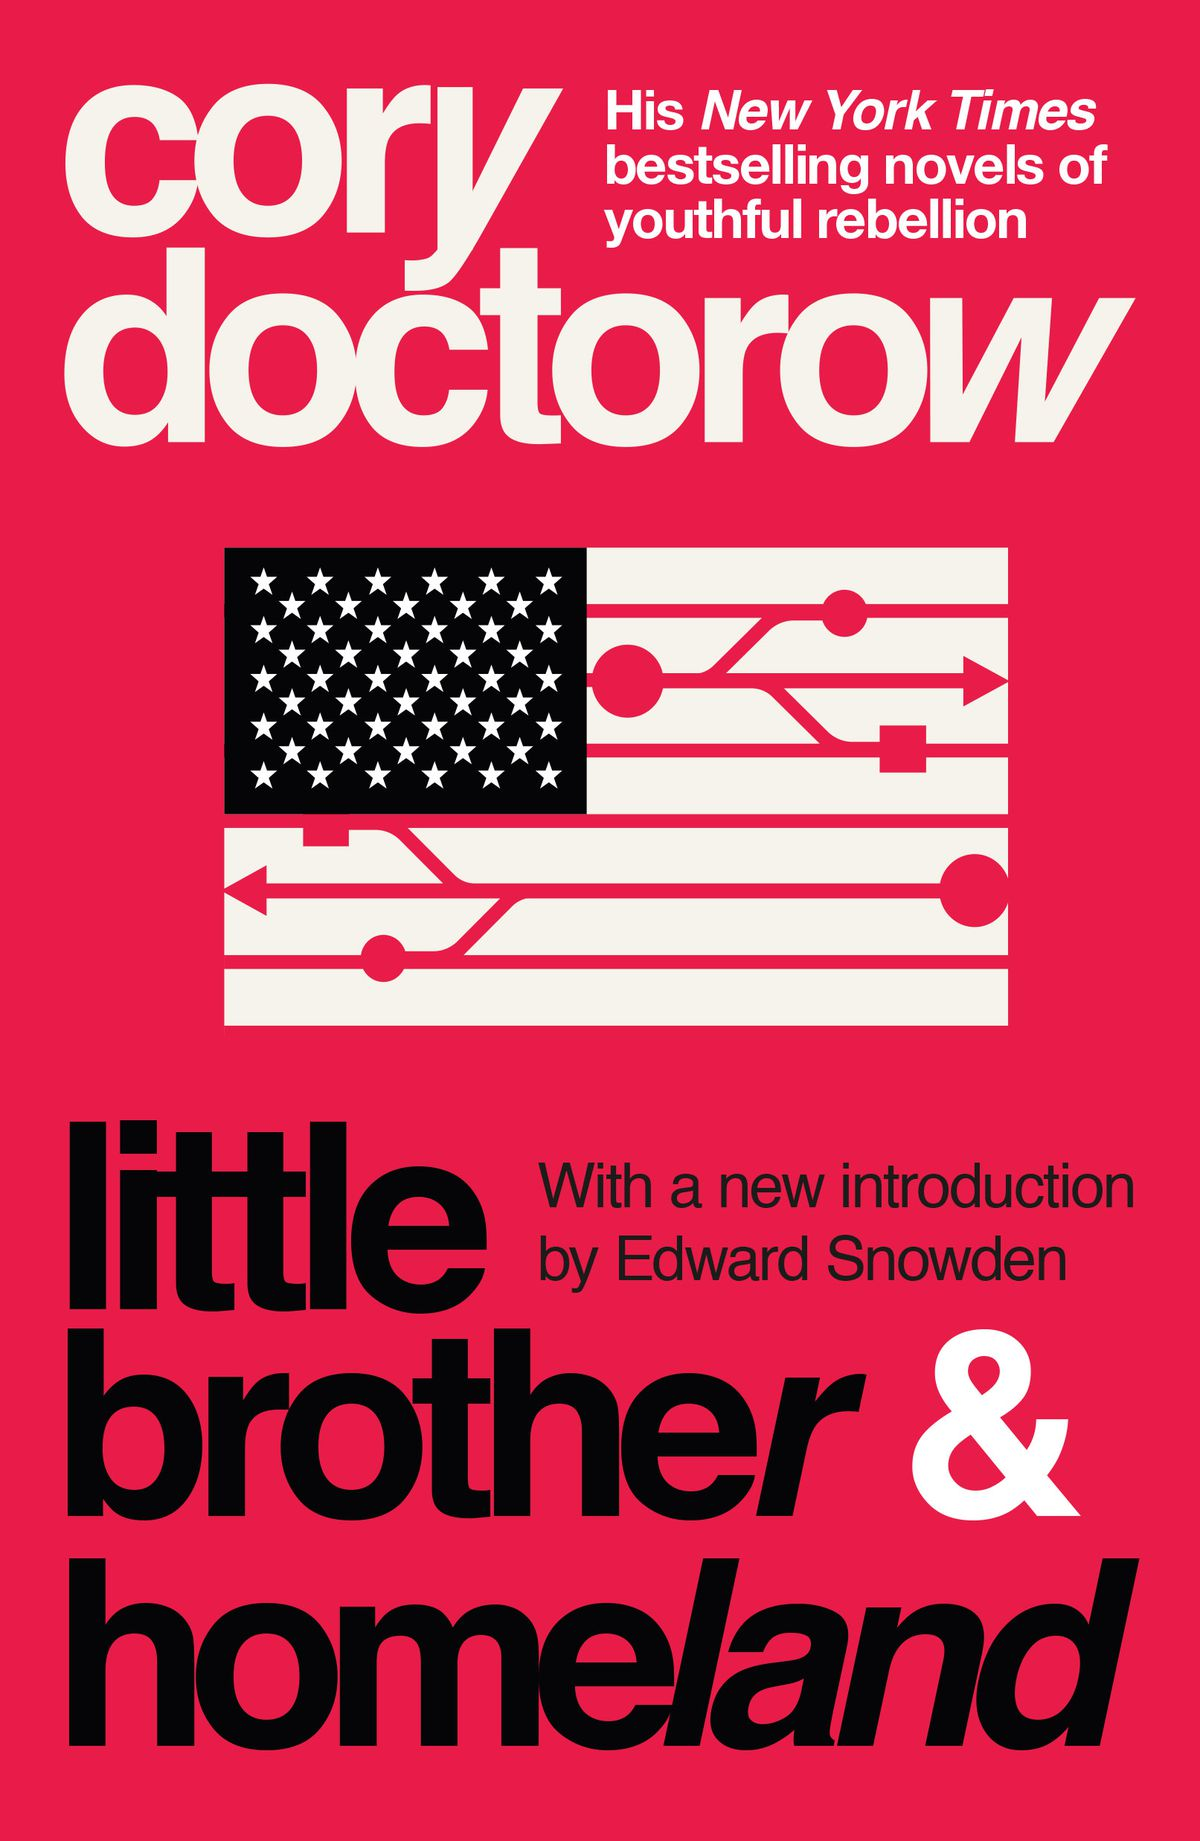 little brother & homeland omnibus covers by cory doctorow